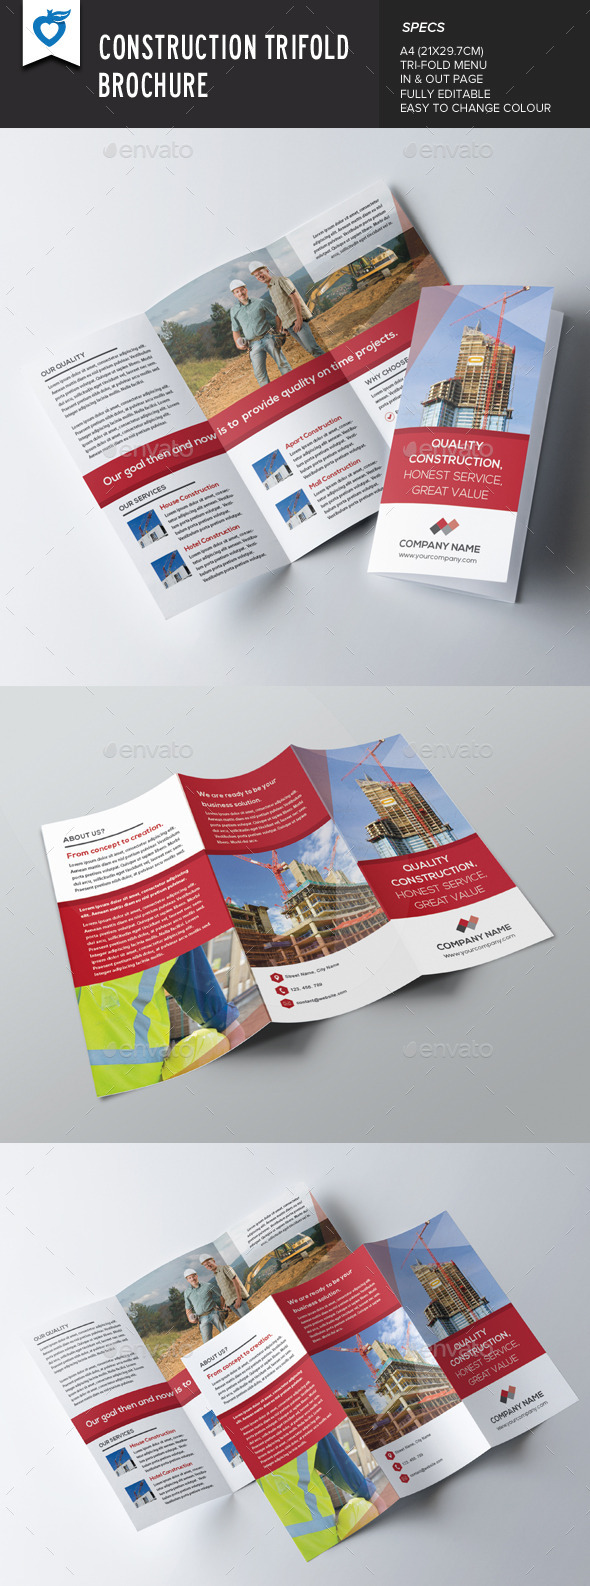 GraphicRiver Construction Trifold Brochure 9234613